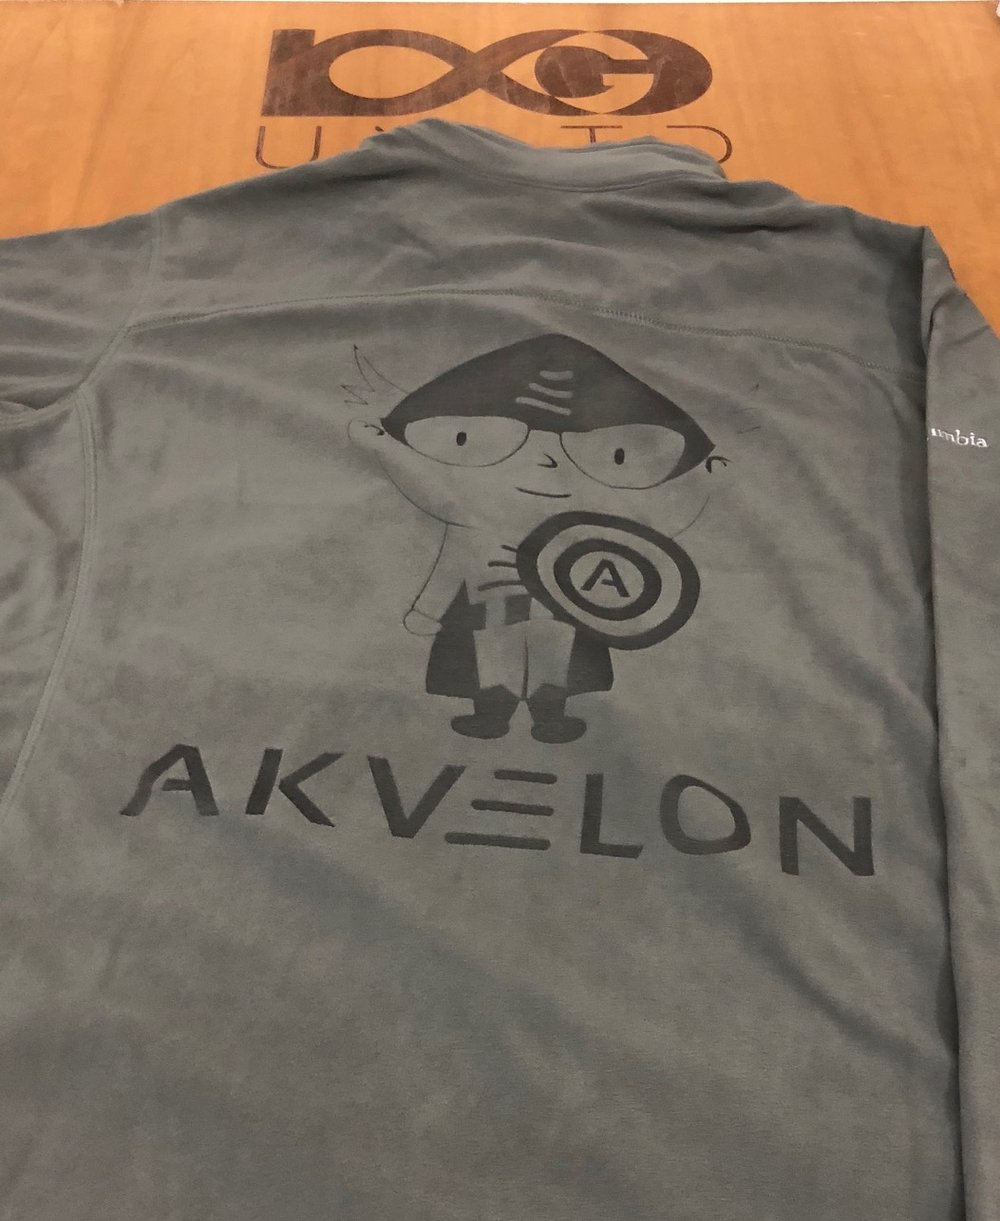 logounltd_laser_etching_embroidery_screen_printing_corporate_apparel_uniform_custom_tshirts_uniforms_dye_sublimation_kirkland_bellevue_seattle_redmond_branded_merchandise_promotional_products (24).jpg